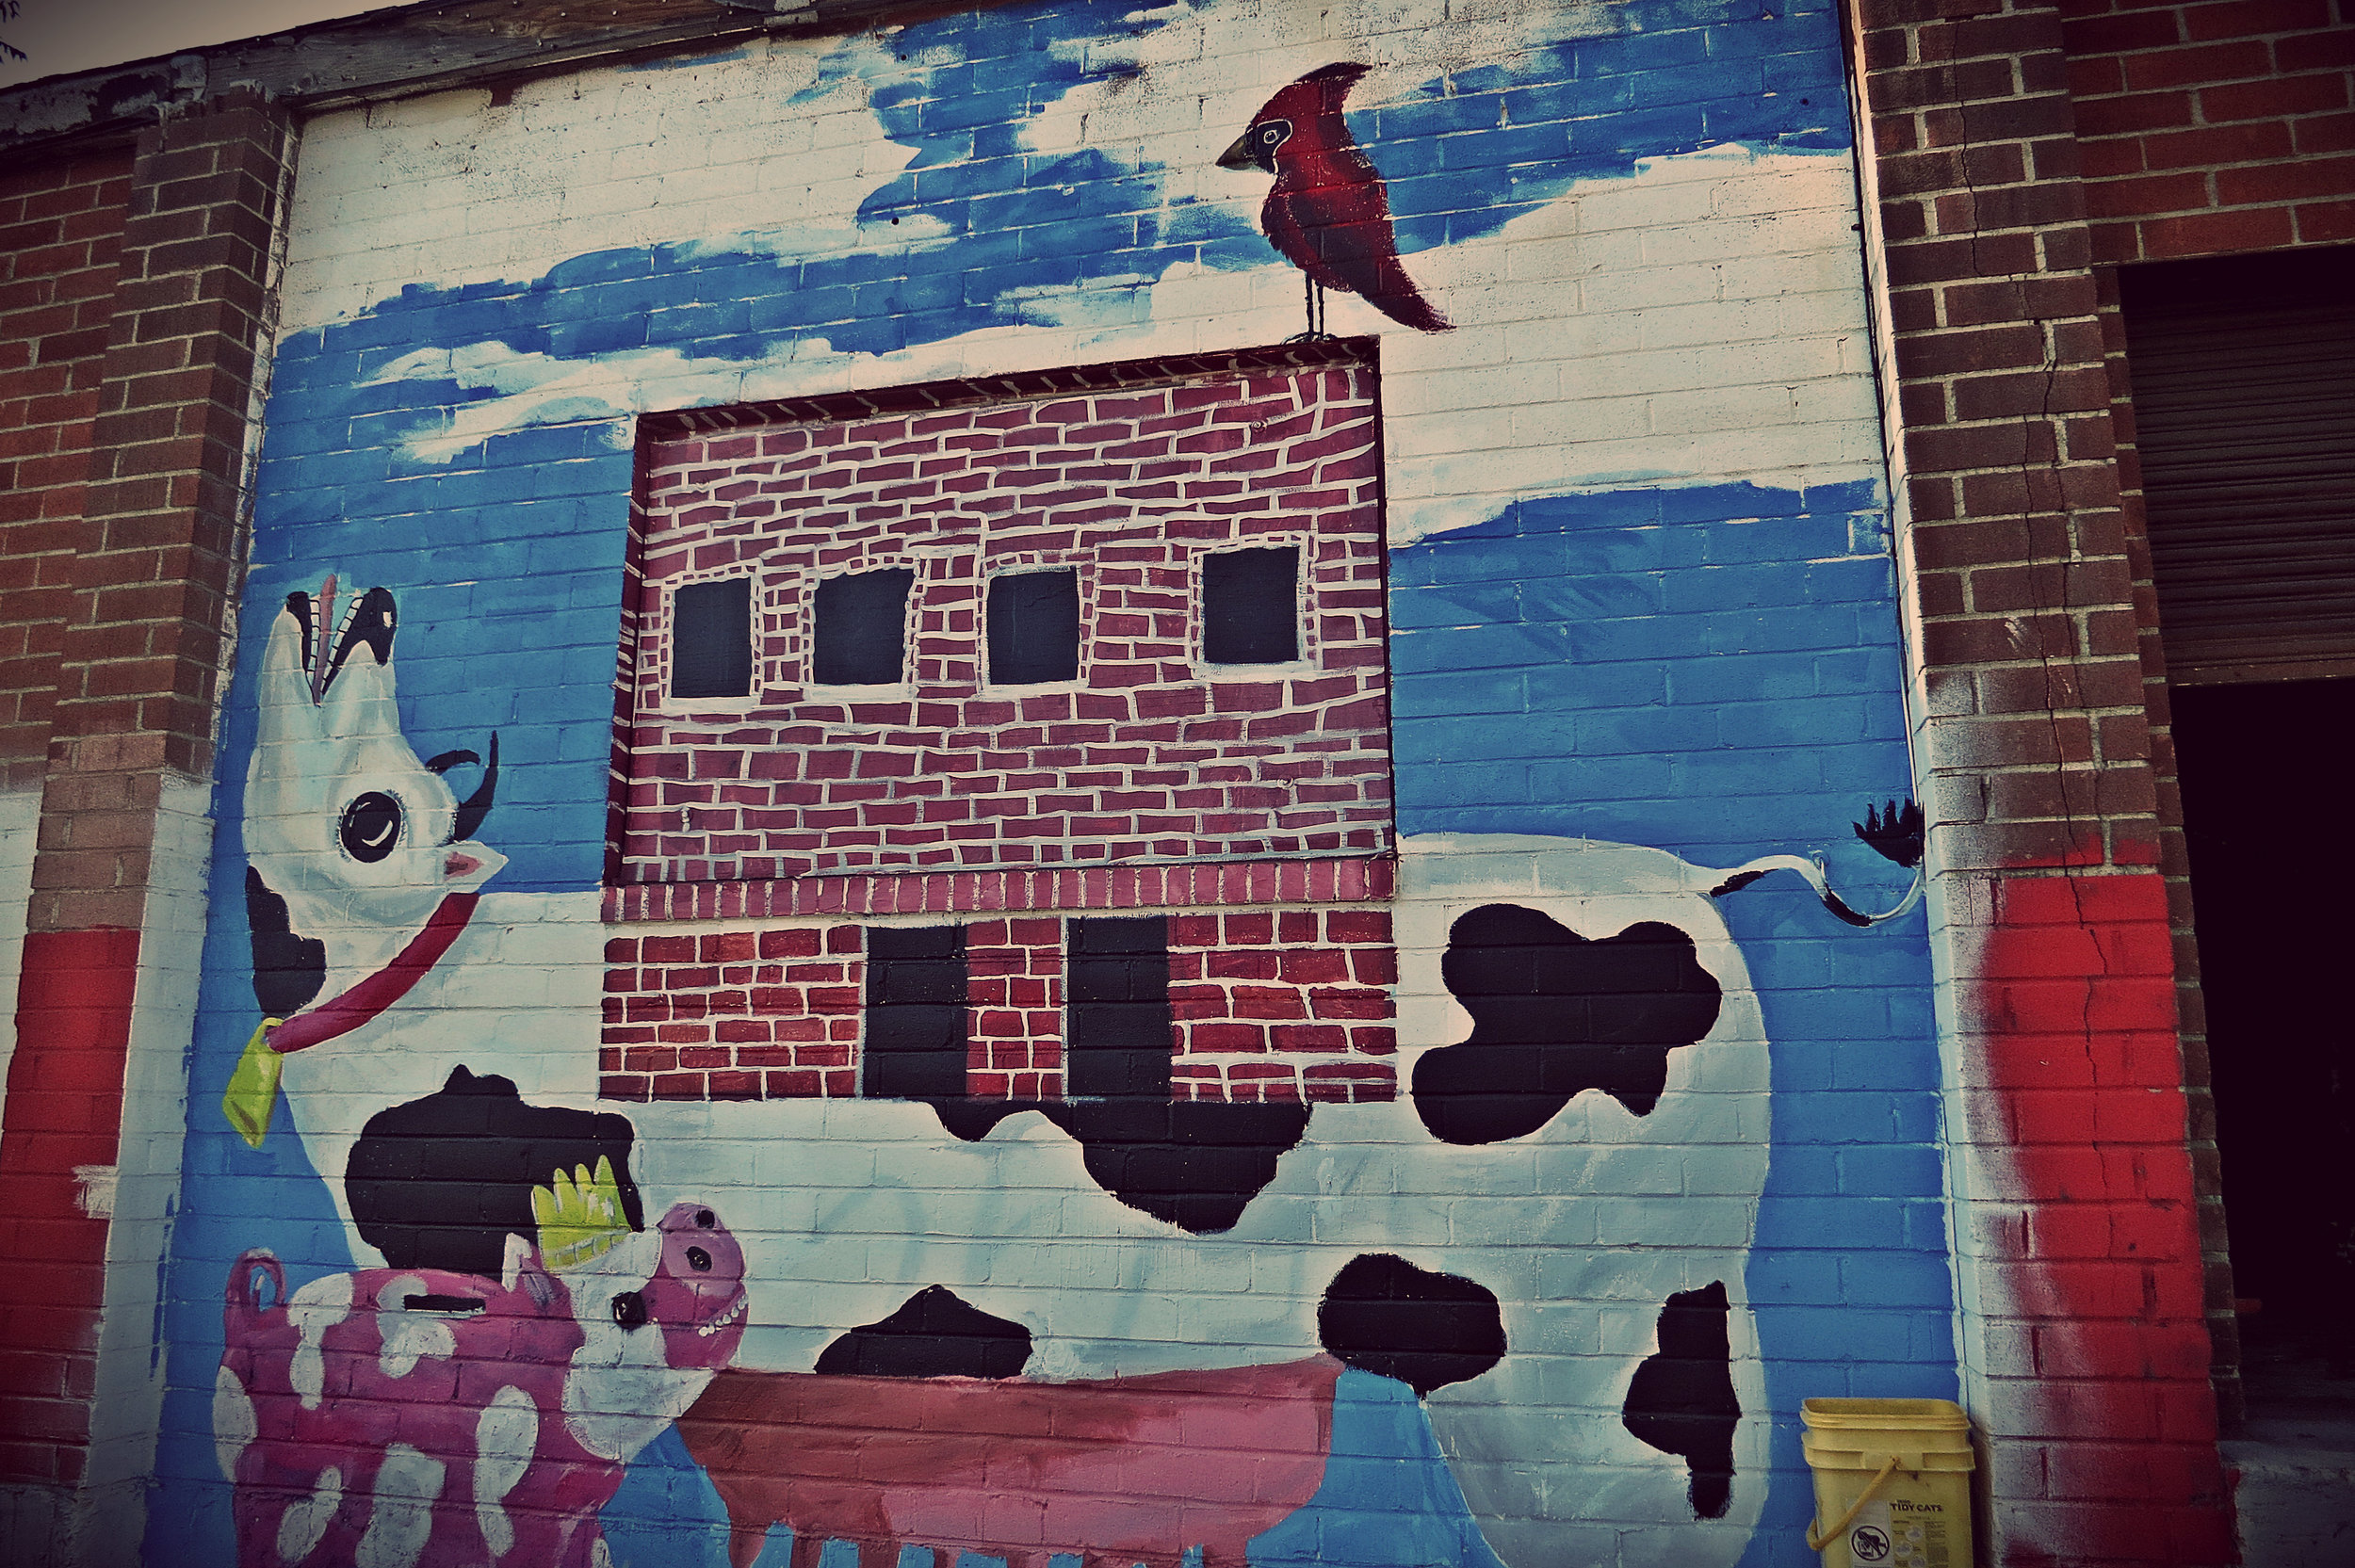 """""""This is acrylic on brick. The cash cow's got our building on his back, with a little bird of hope at the top."""""""